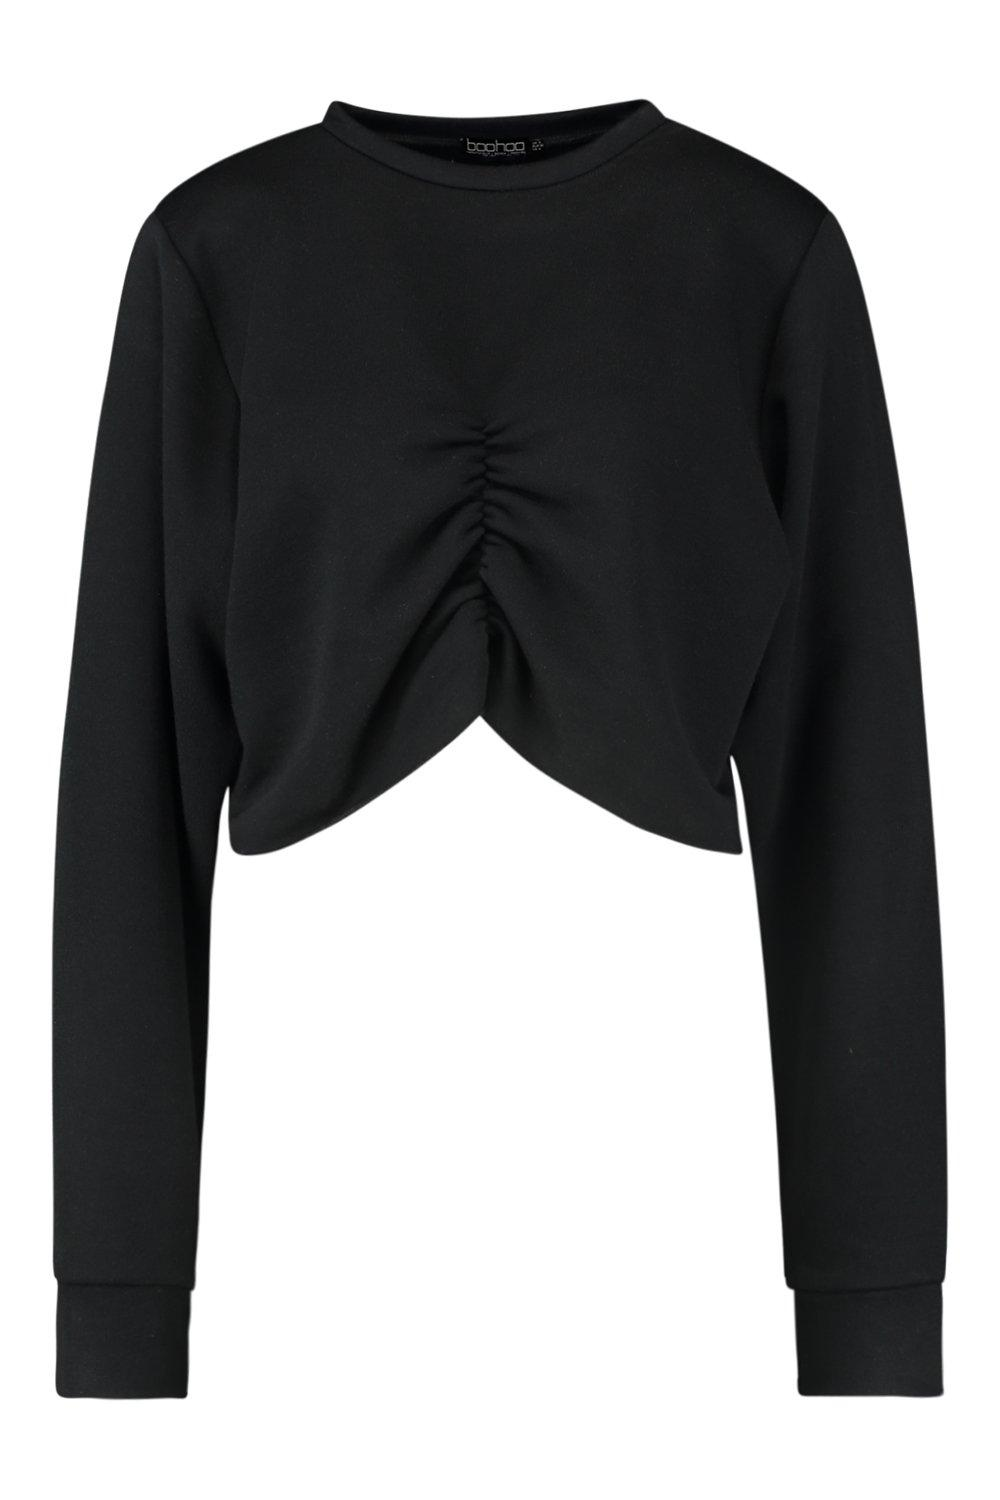 Ruched Front black Sweat Crop Crop Sweat Ruched Front rWwqnrSTH